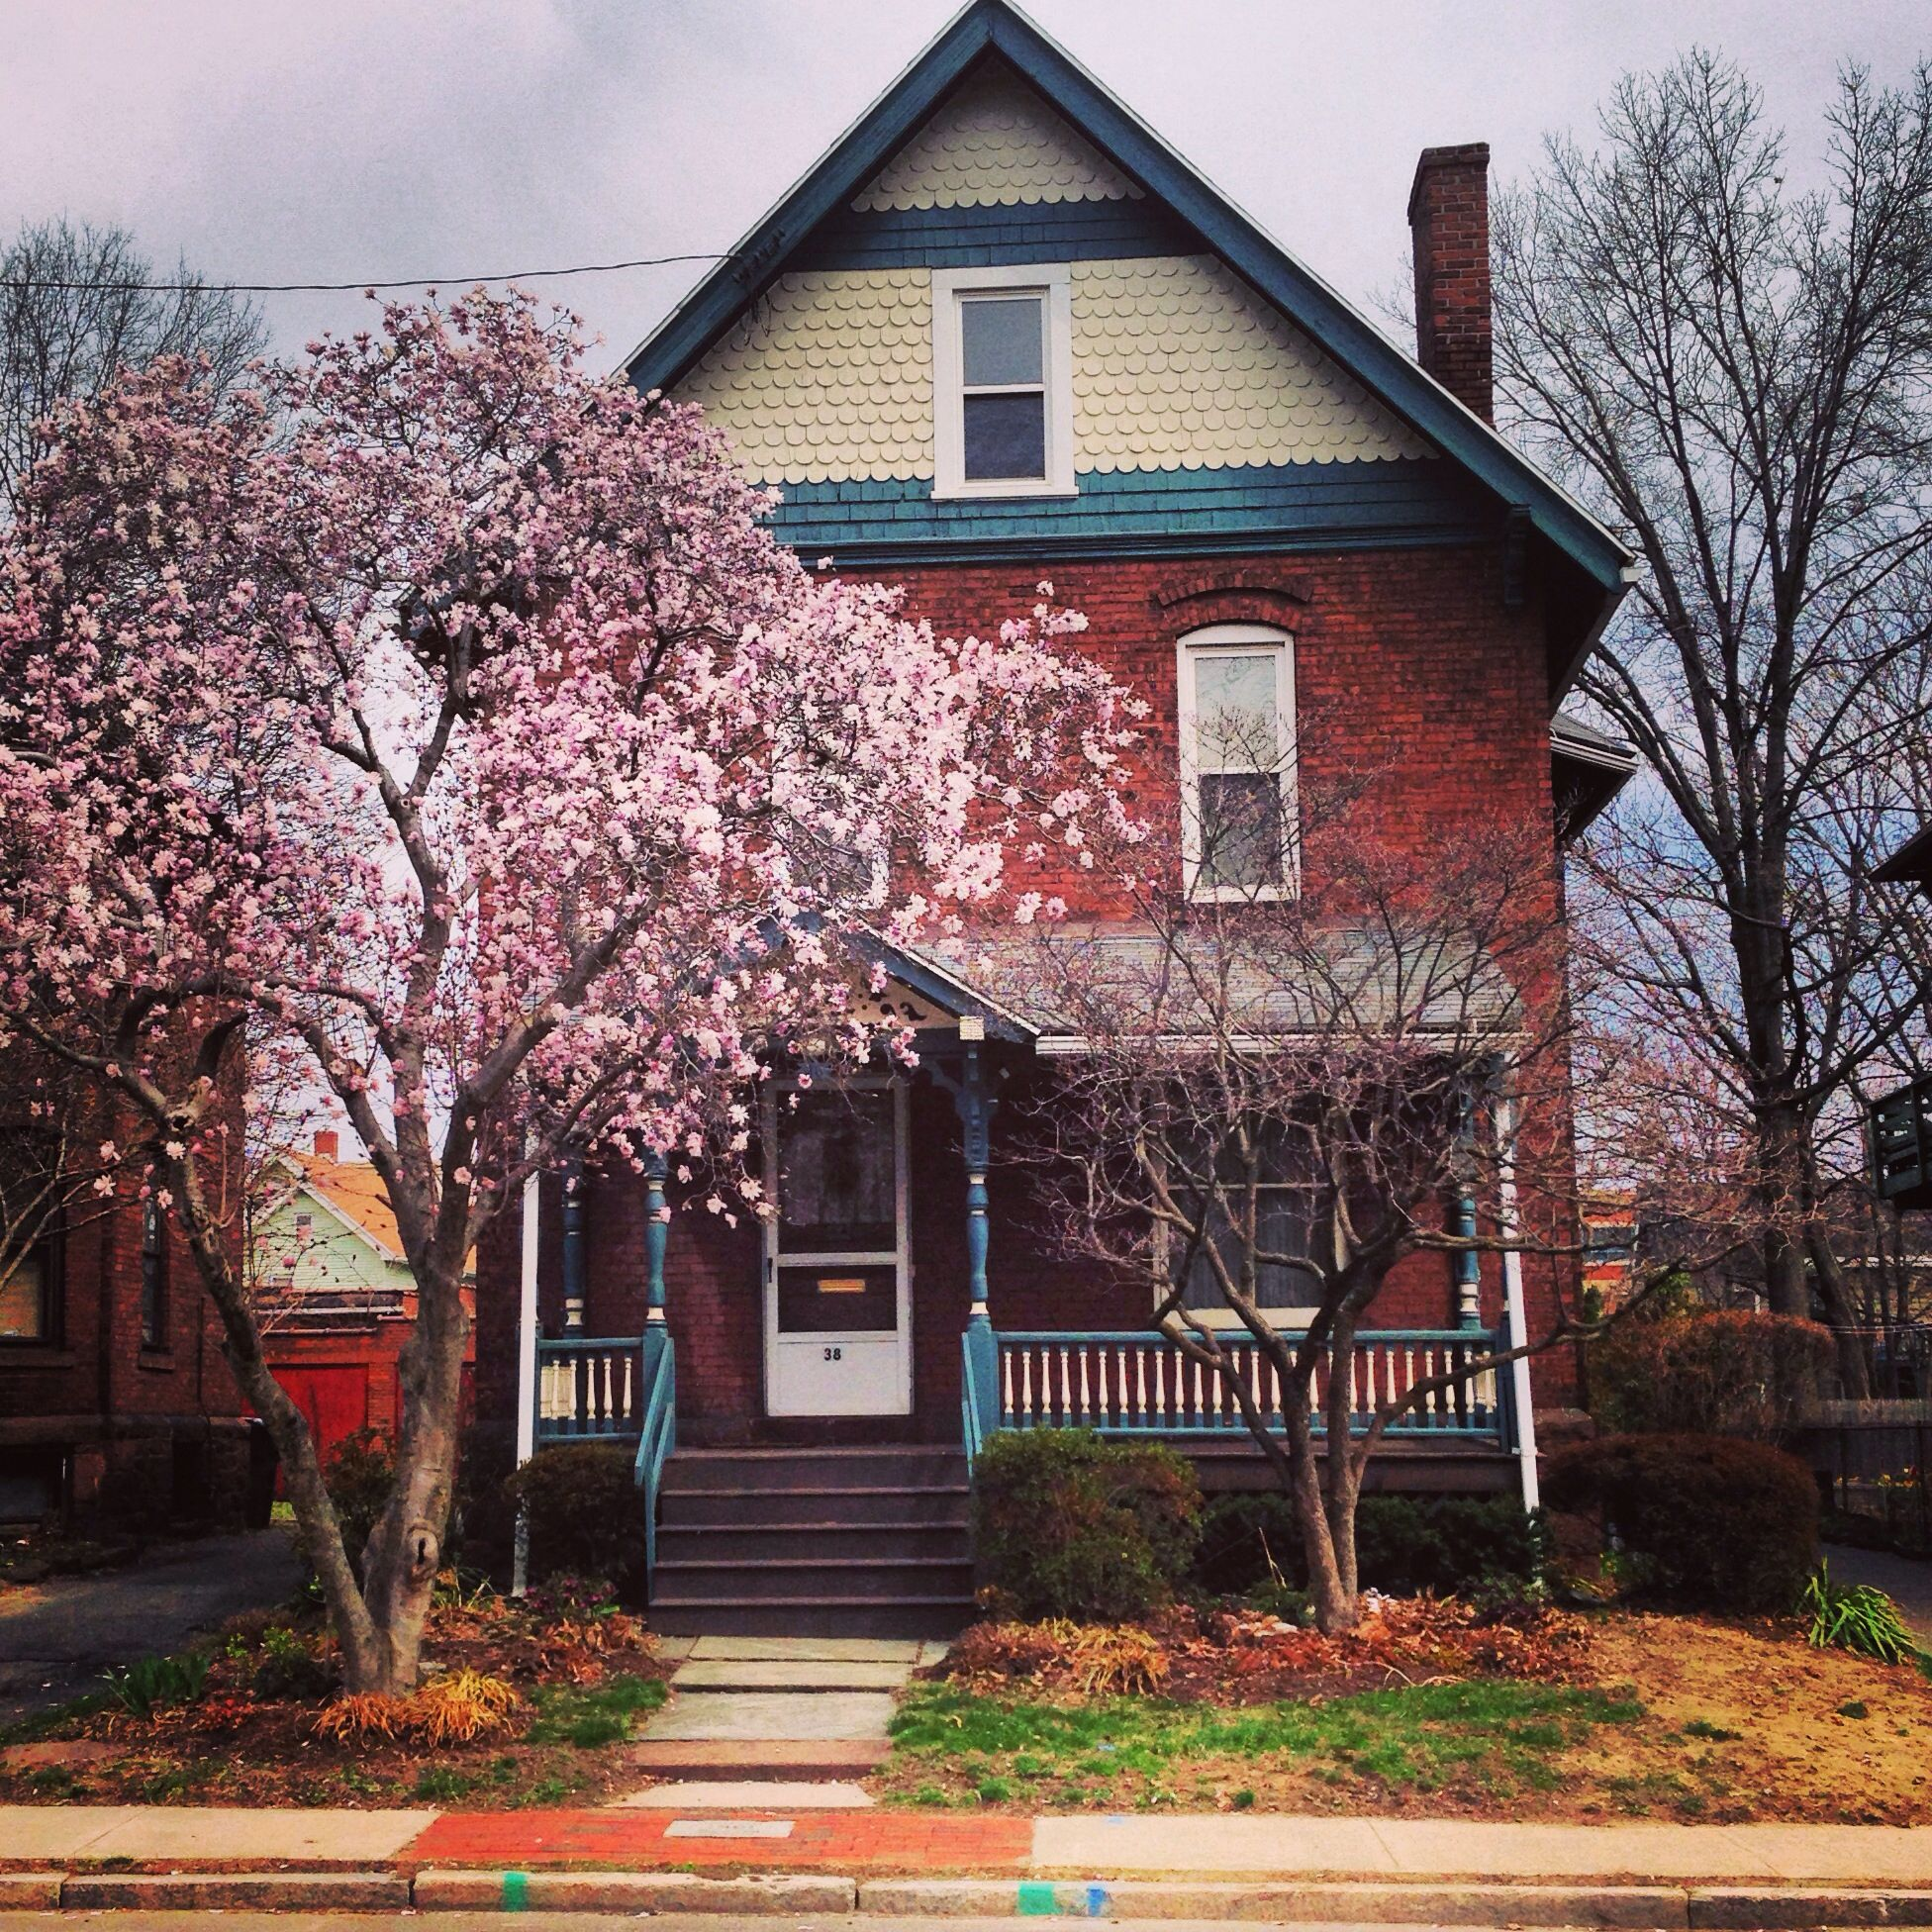 Beautiful Cherry Blossom Tree In The Front Yard Compliments The Lovely Home Beautiful Landscapes My Dream Home House Styles